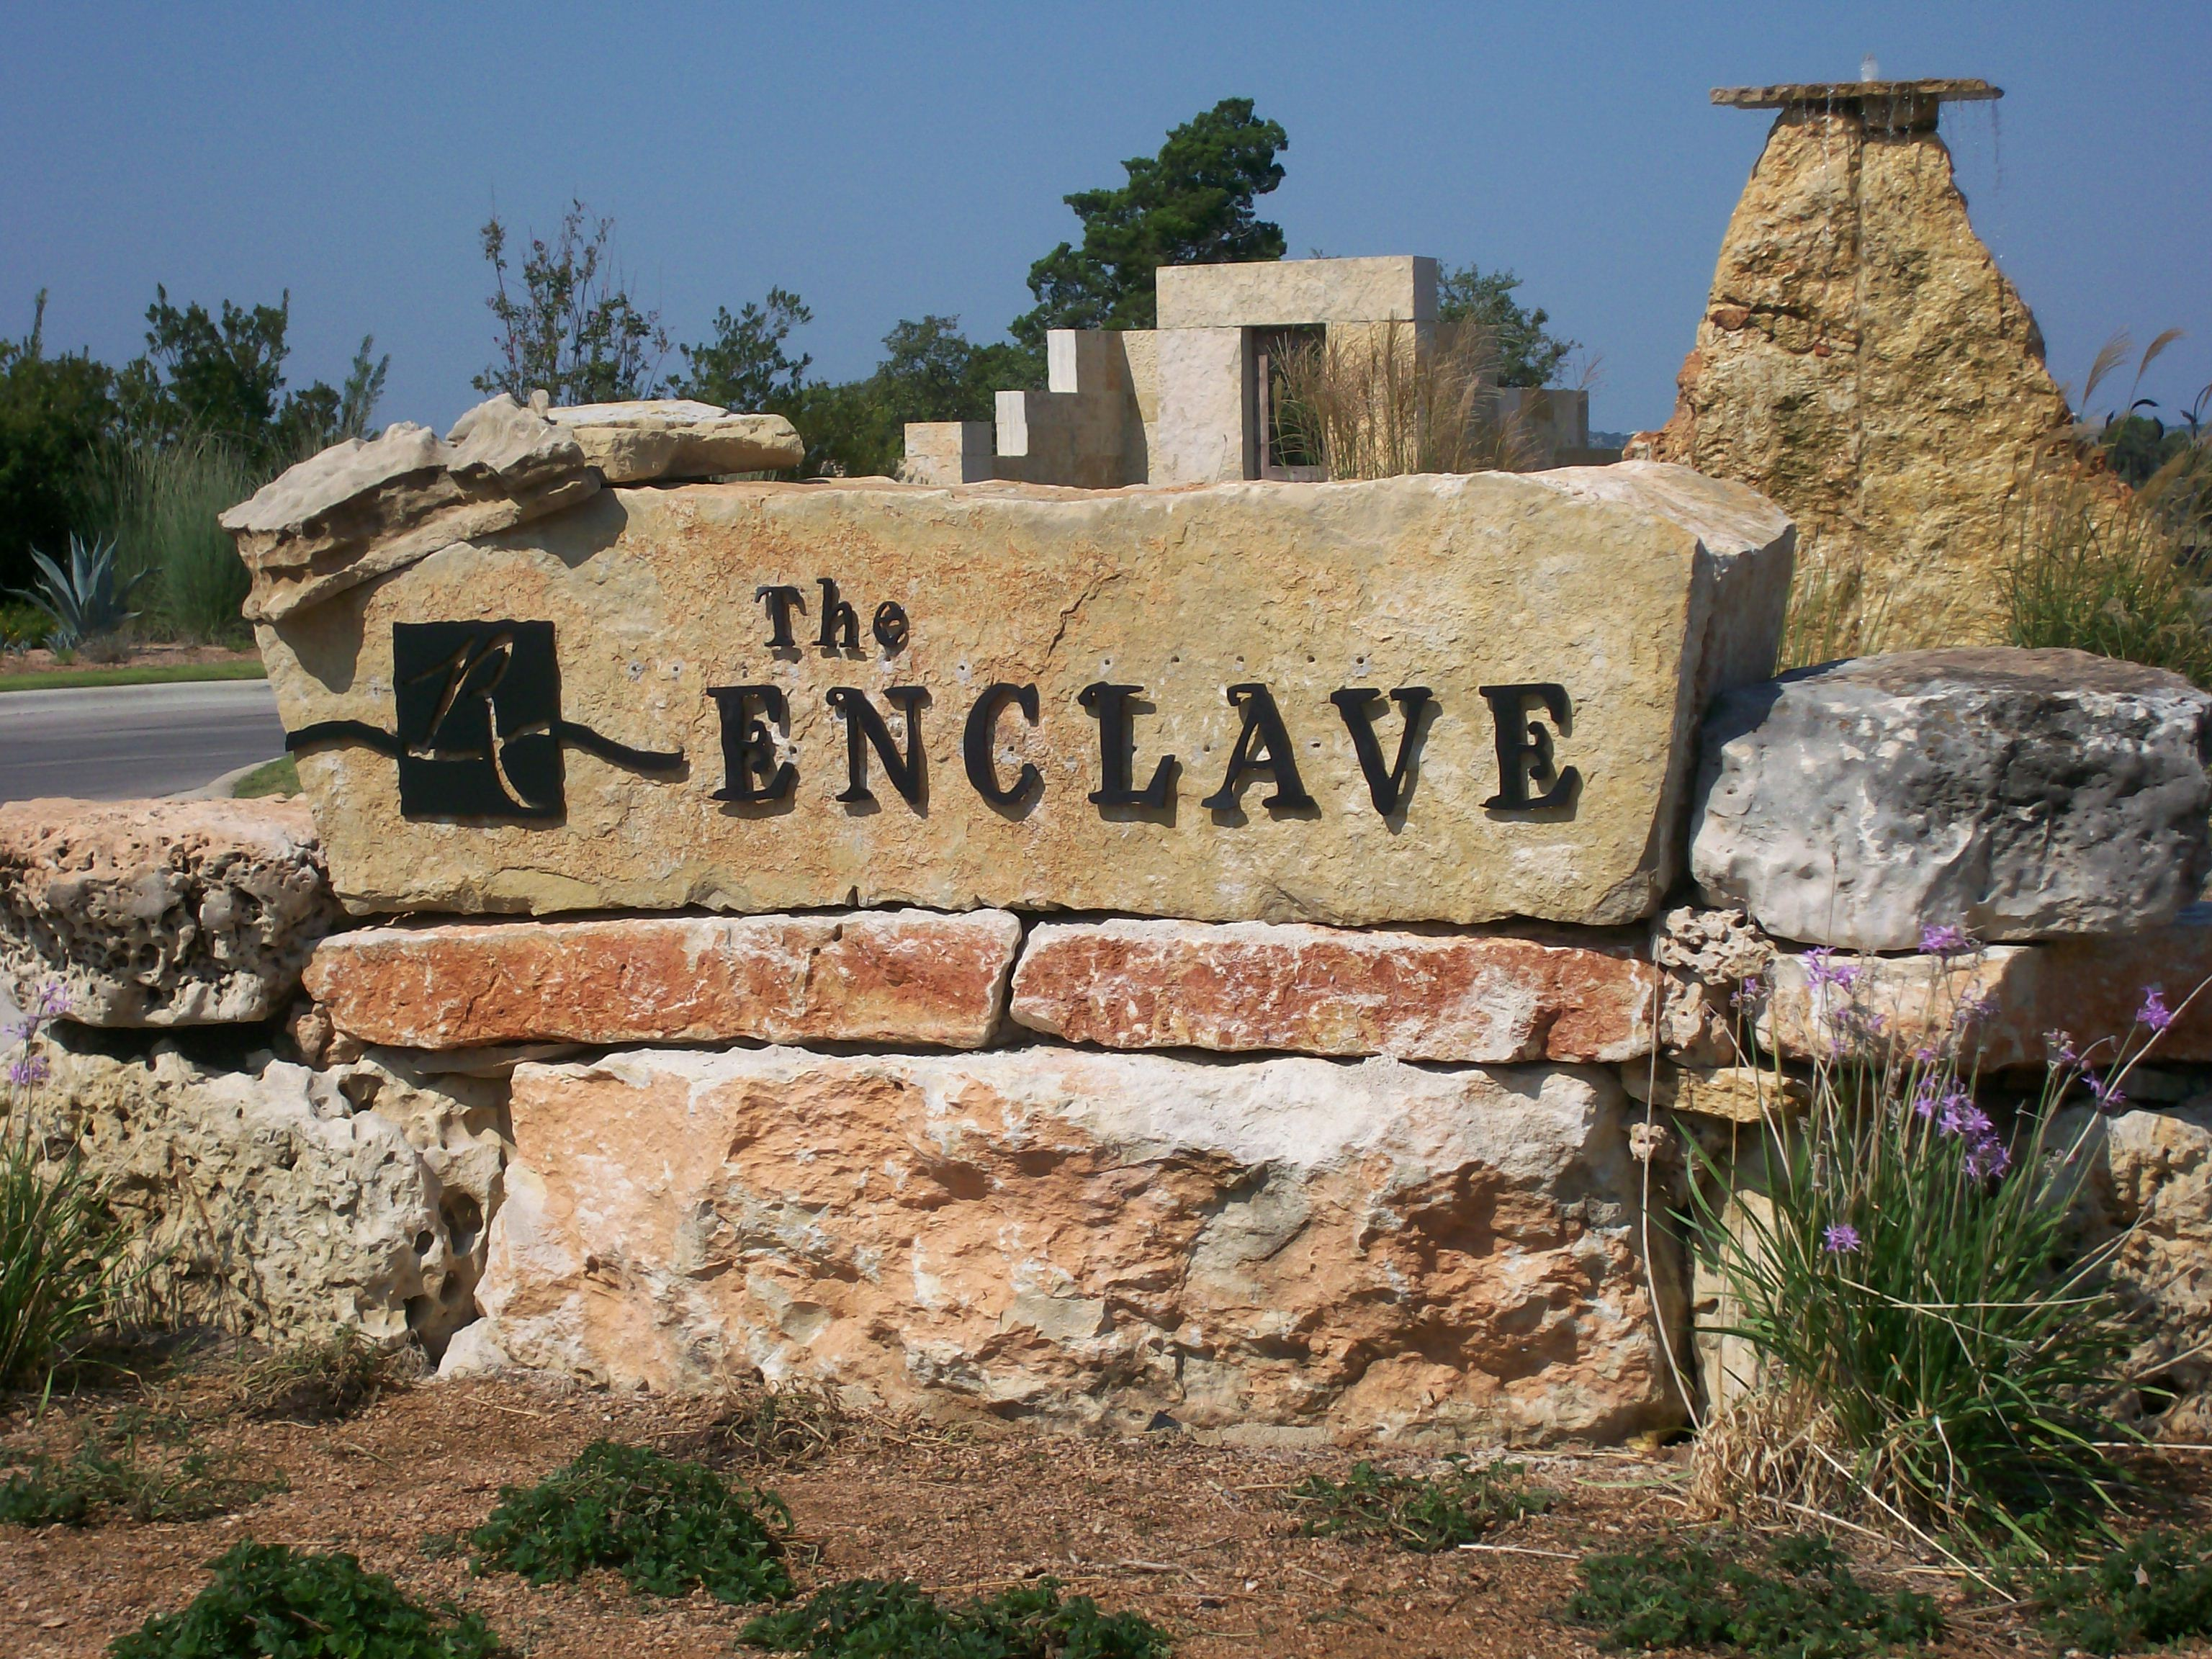 The Enclave Stone Monument